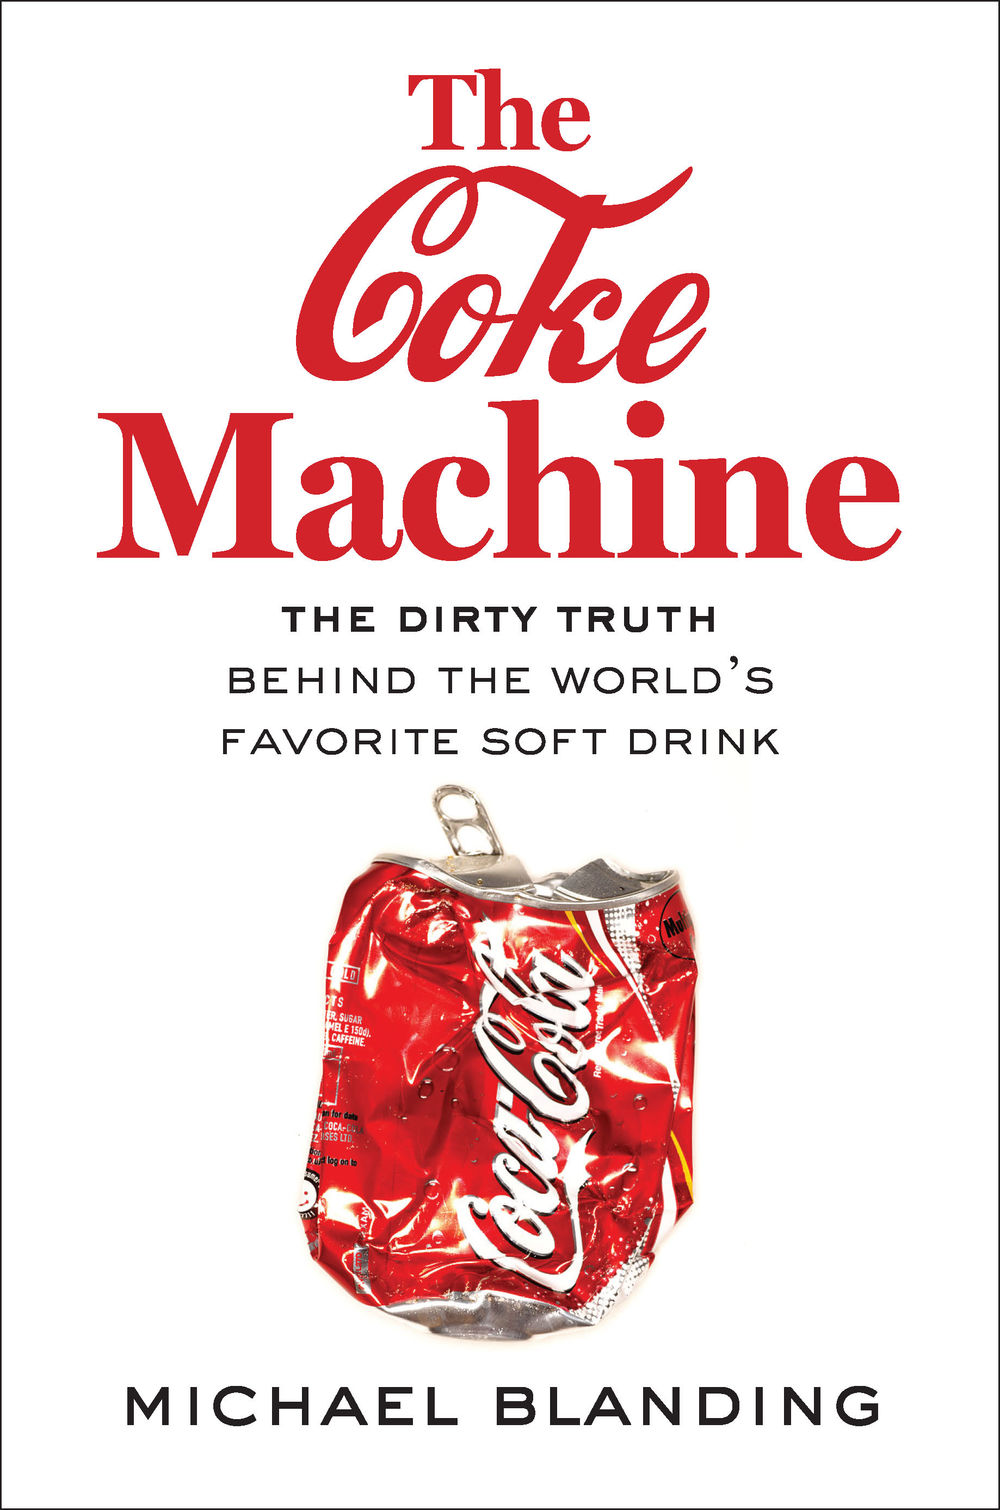 TheCokeMachinecover.jpg